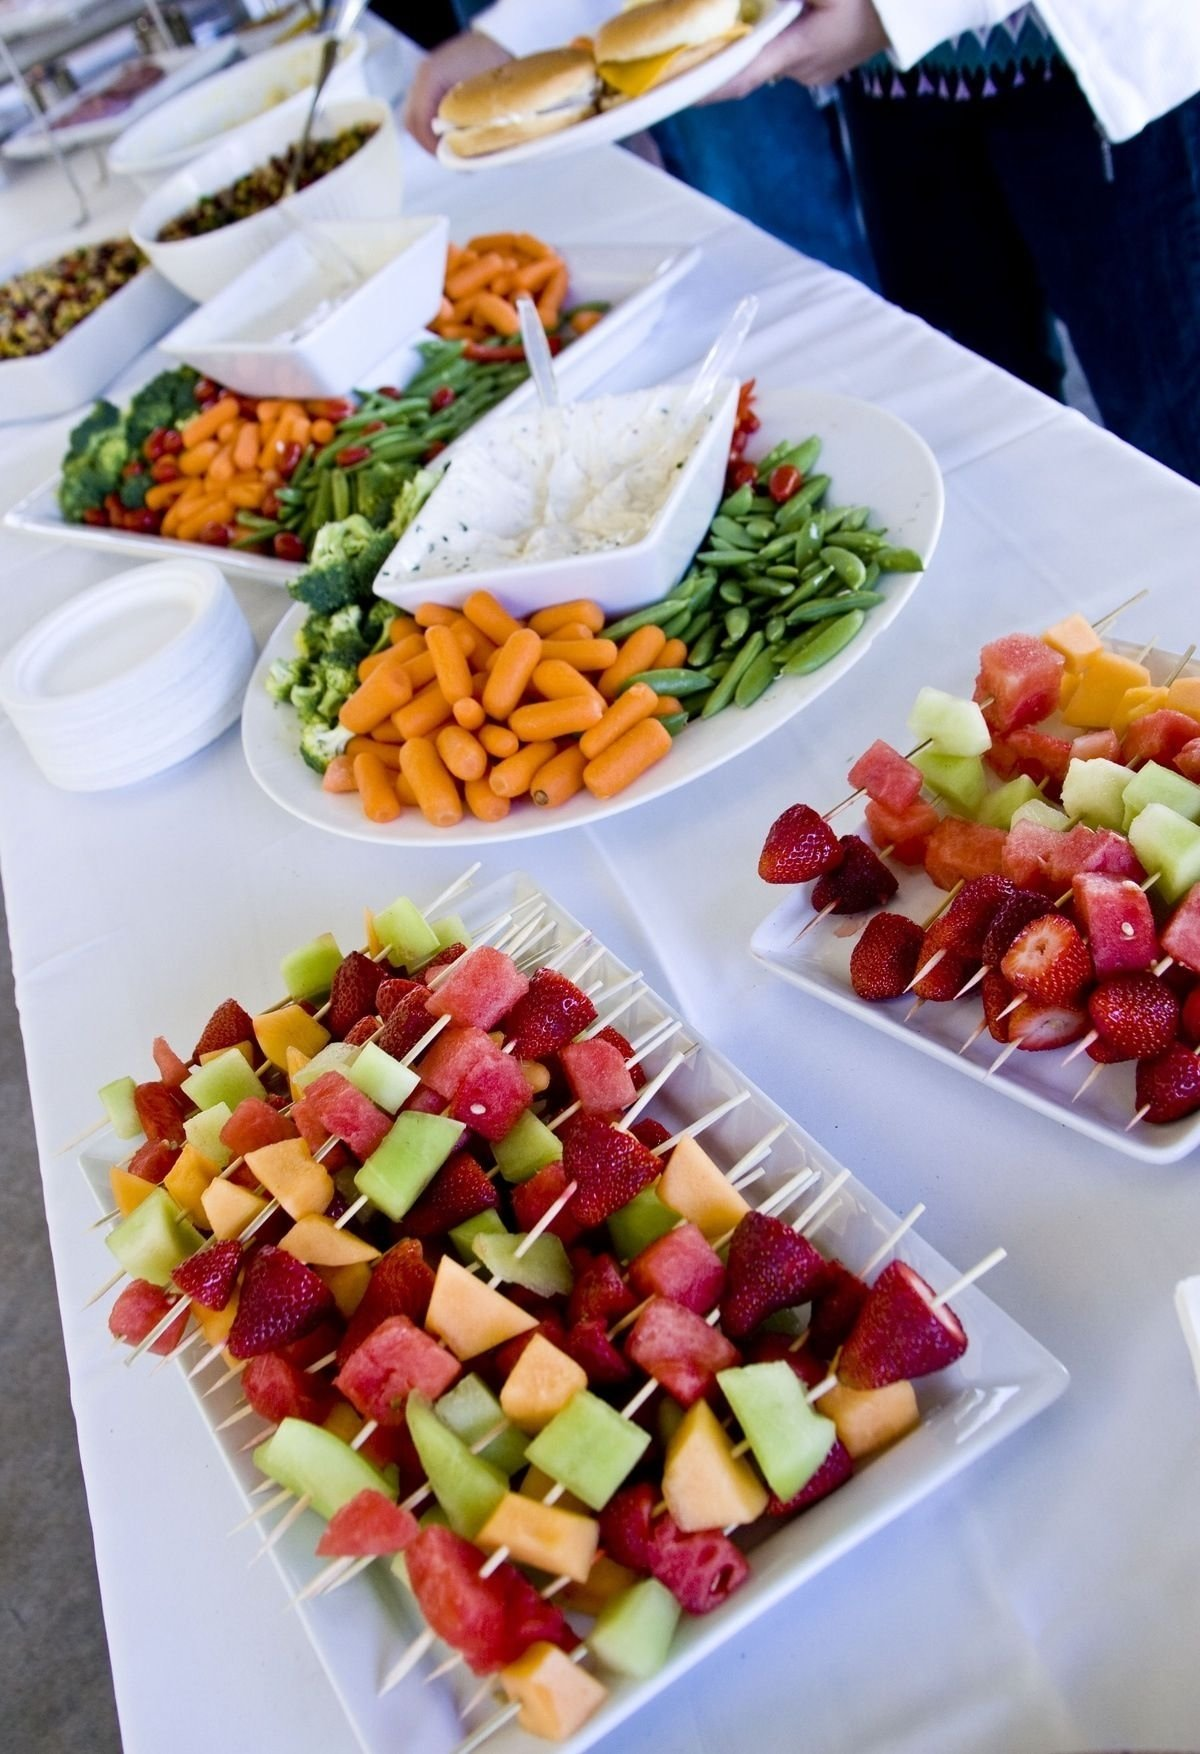 10 cute simple wedding reception food ideas 10 cute simple wedding reception food ideas veggie trays like this and fruit kabobs for the junglespirit Gallery